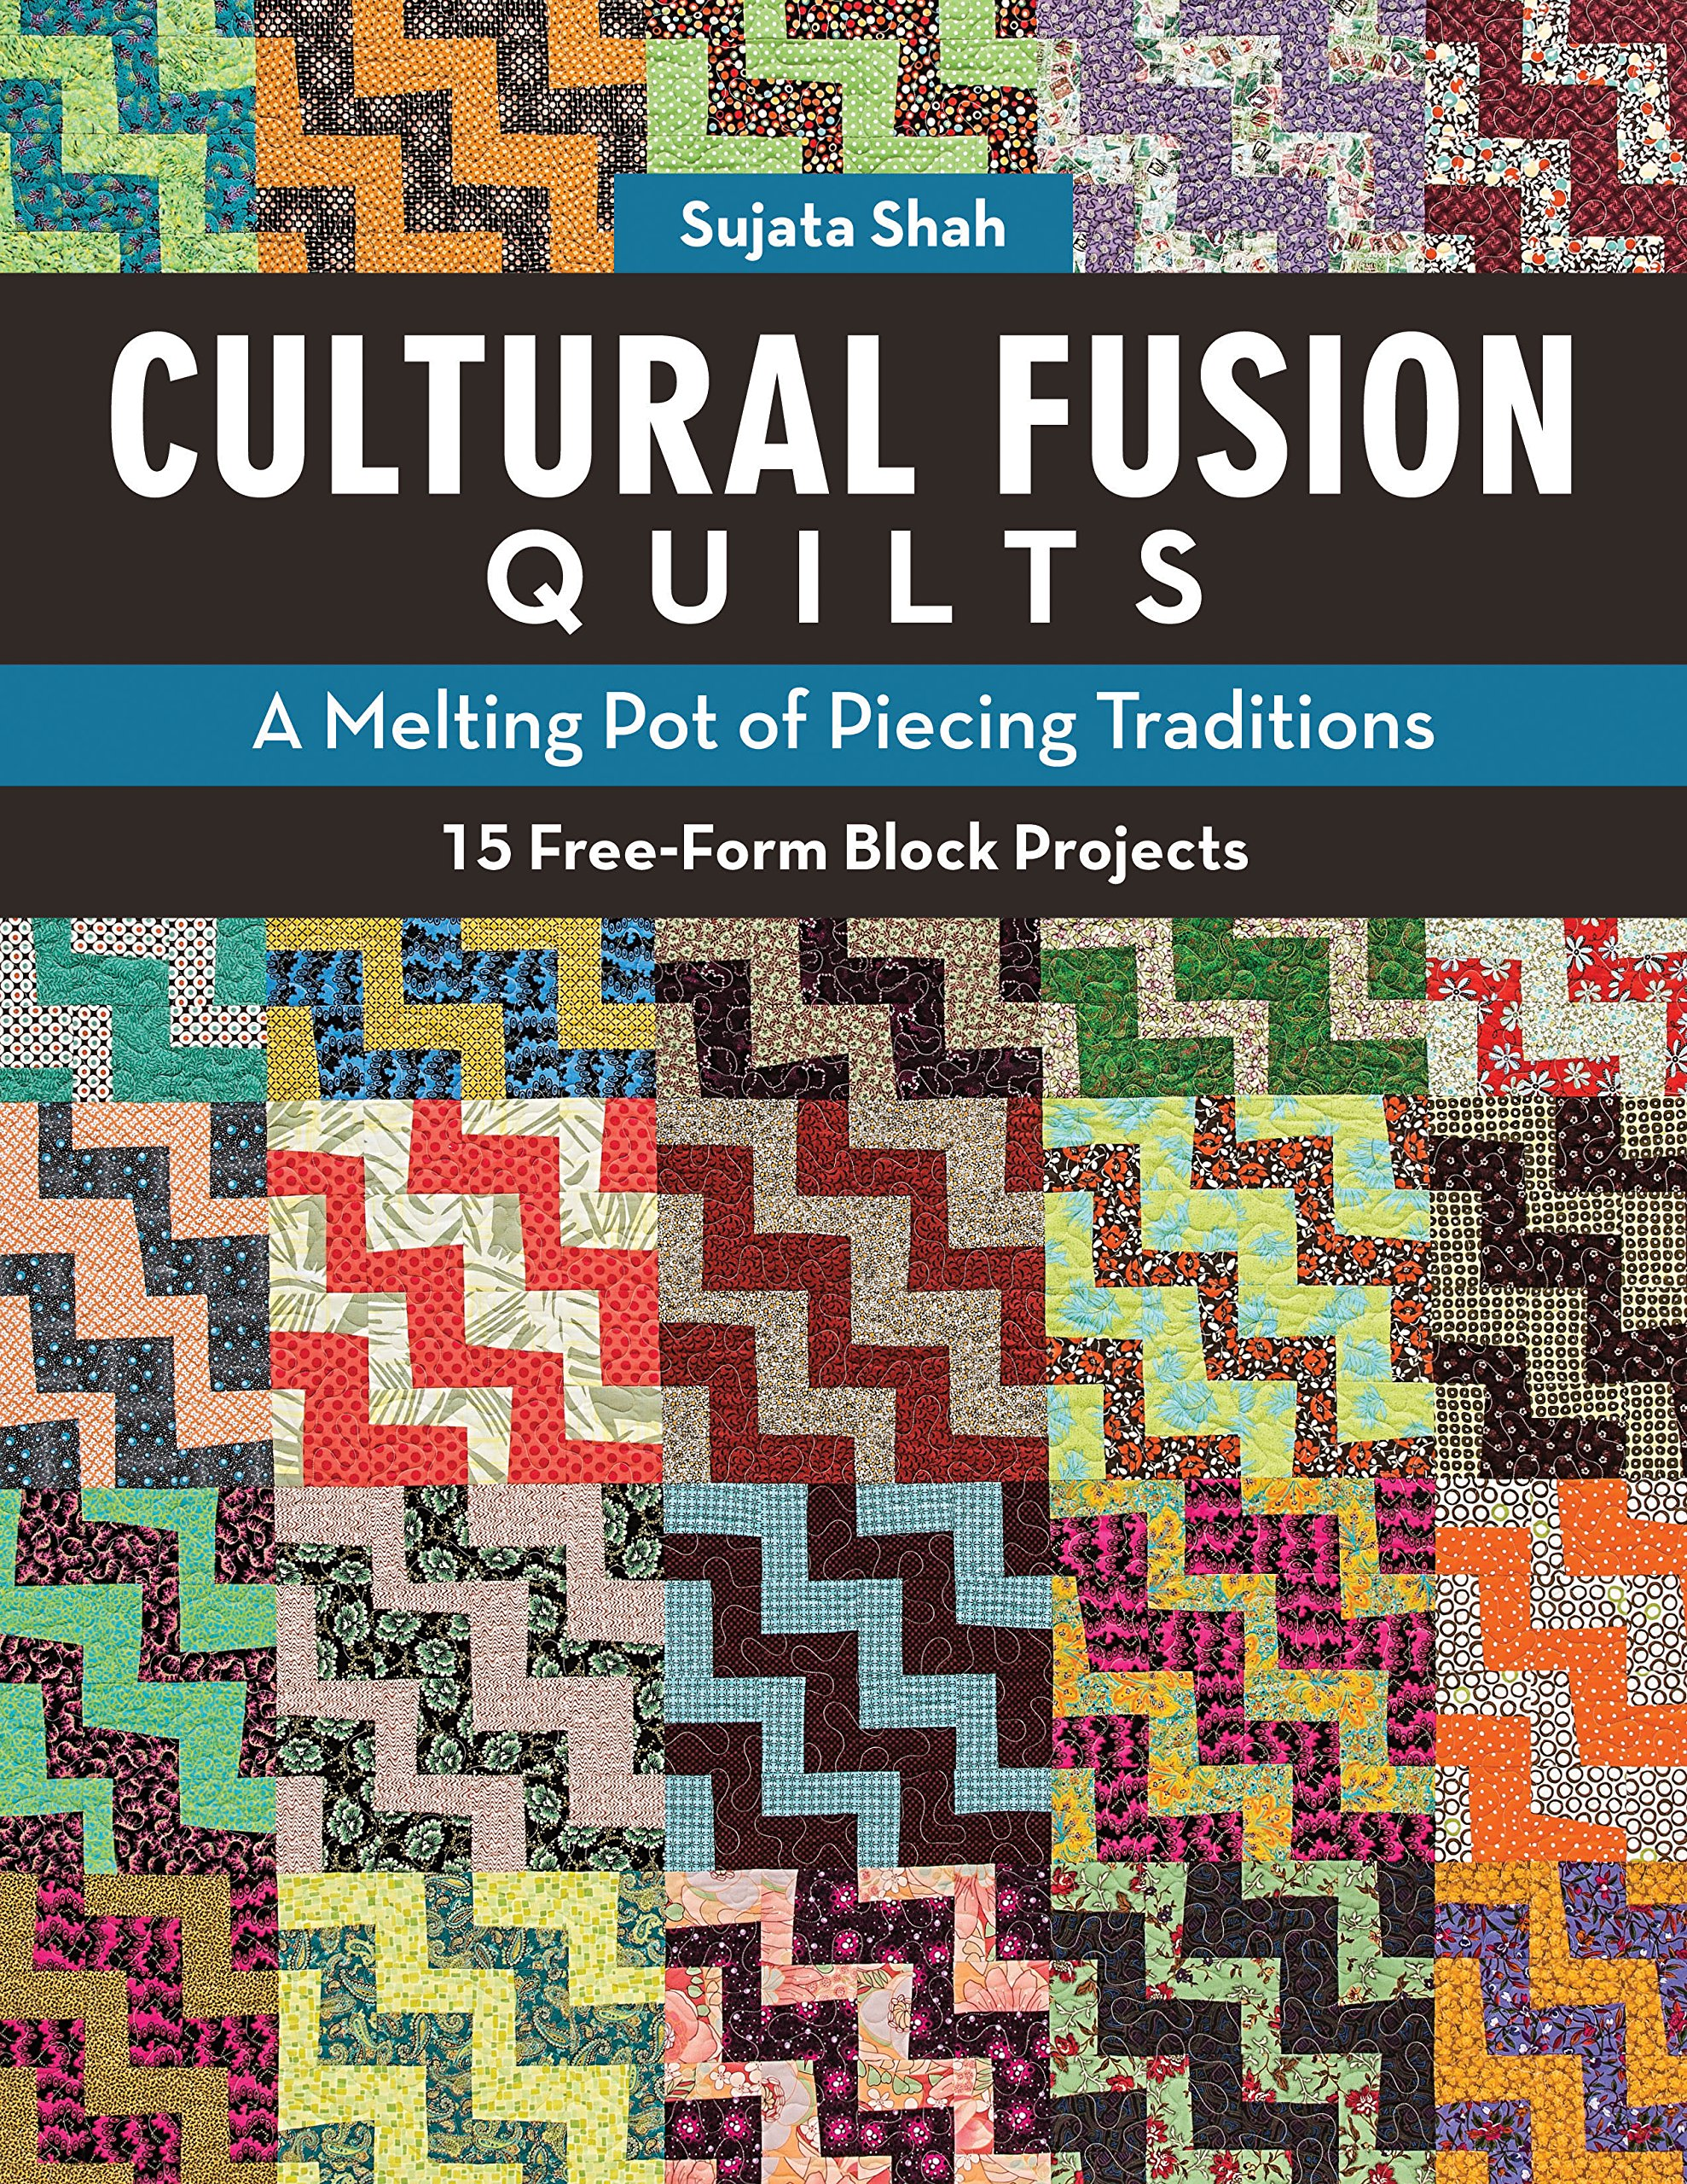 Cultural Fusion Quilts: A Melting Pot of Piecing Traditions